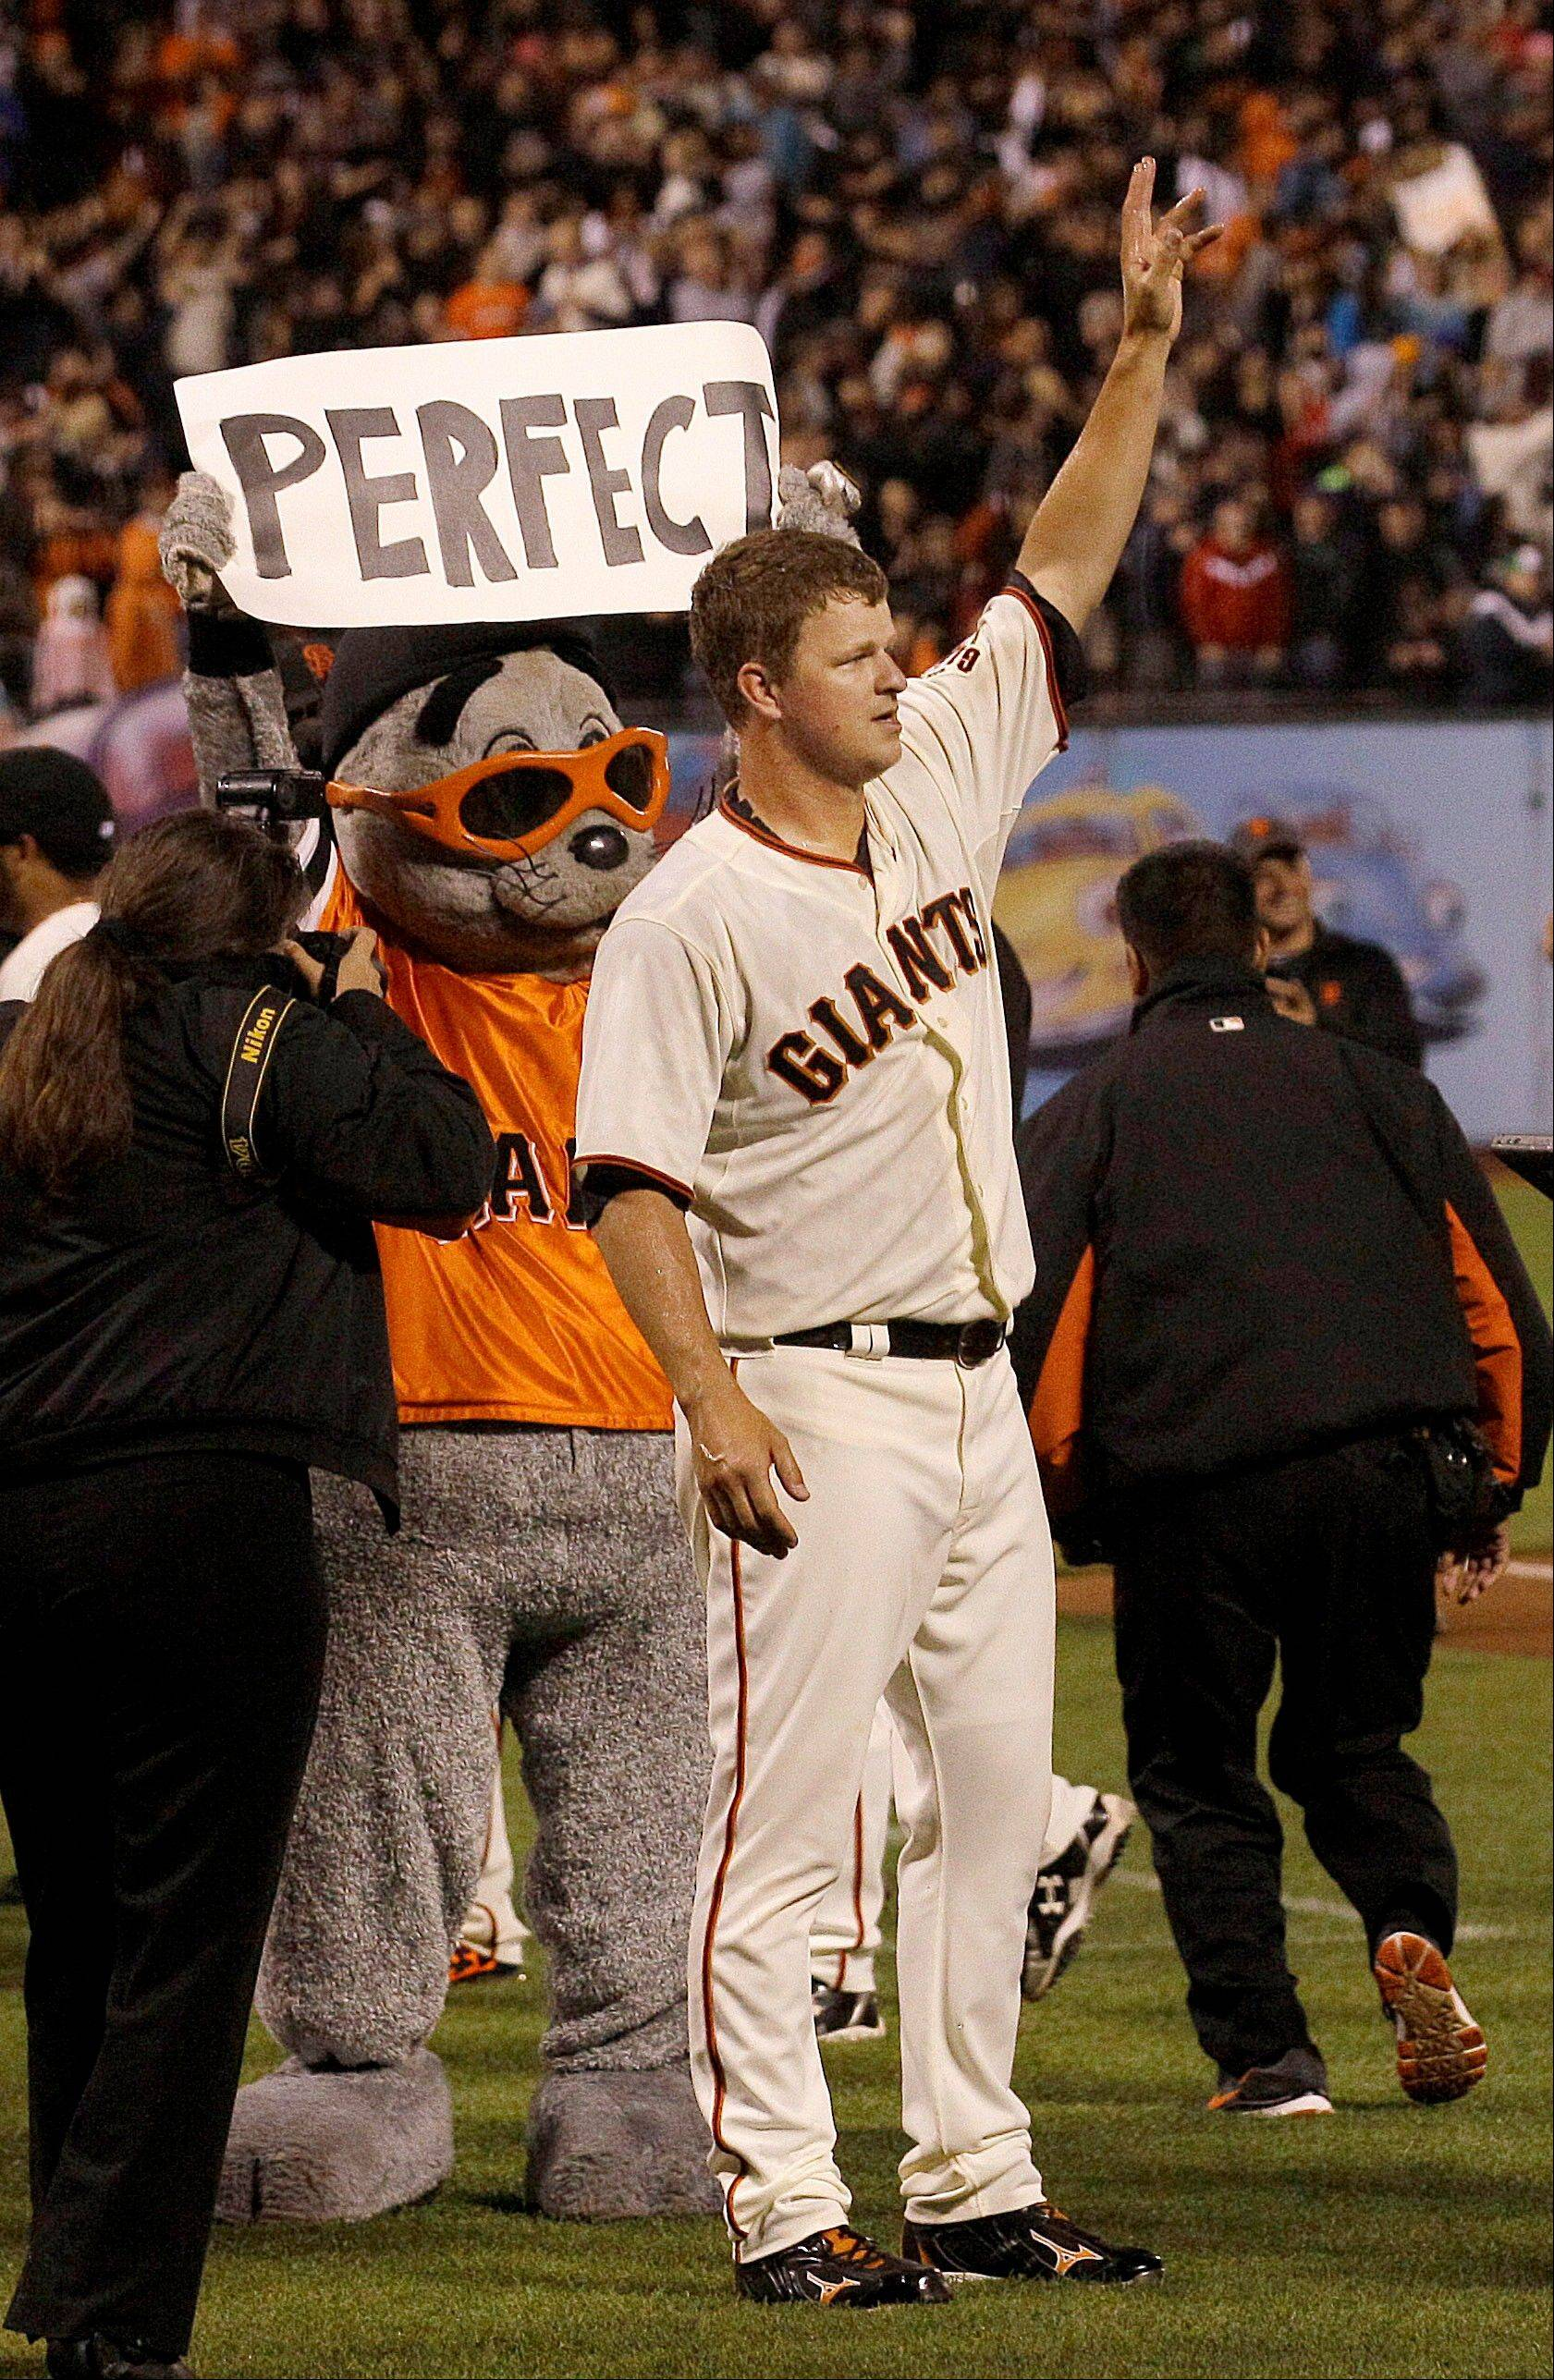 Cain pitches Giants' first perfect game